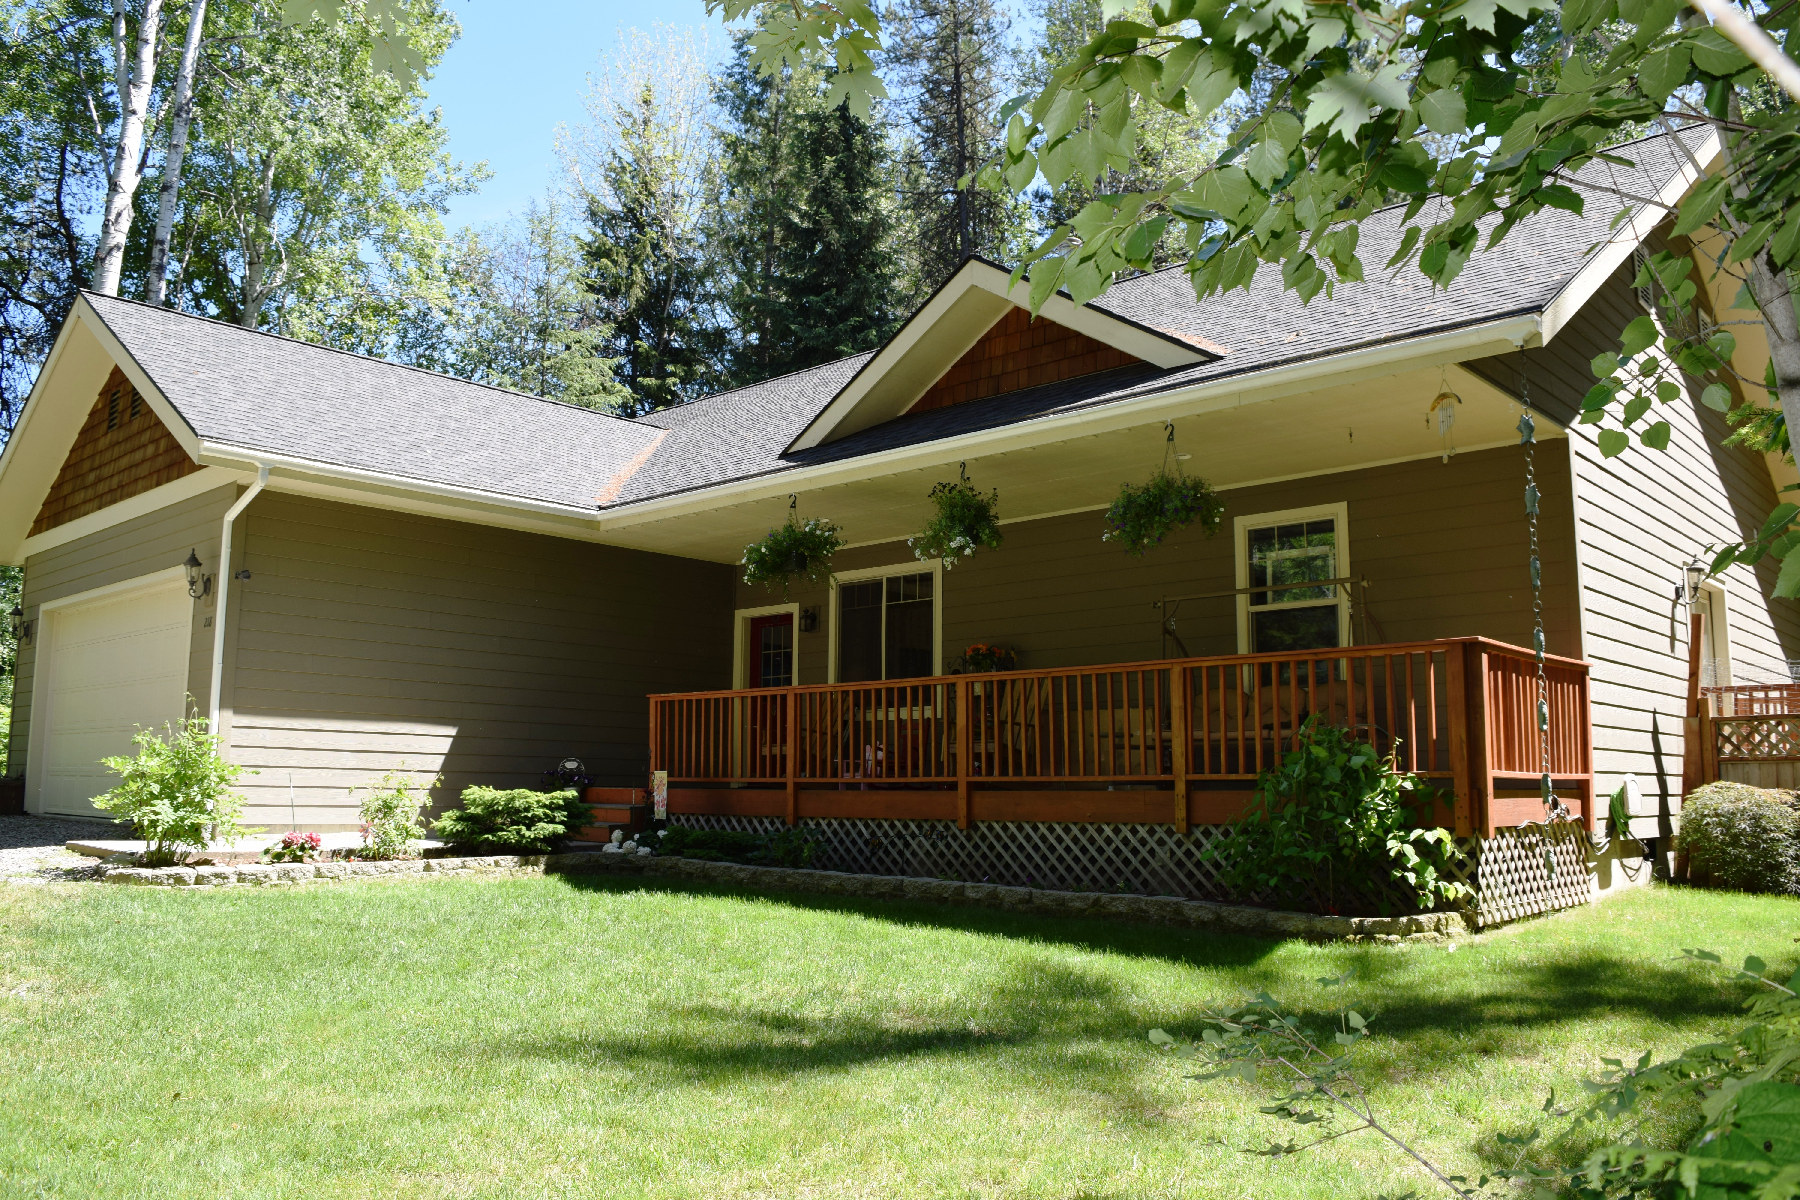 Single Family Home for Sale at Selle Valley single level on 4.99 acres 218 Colburn Culver Rd Sandpoint, Idaho, 83864 United States